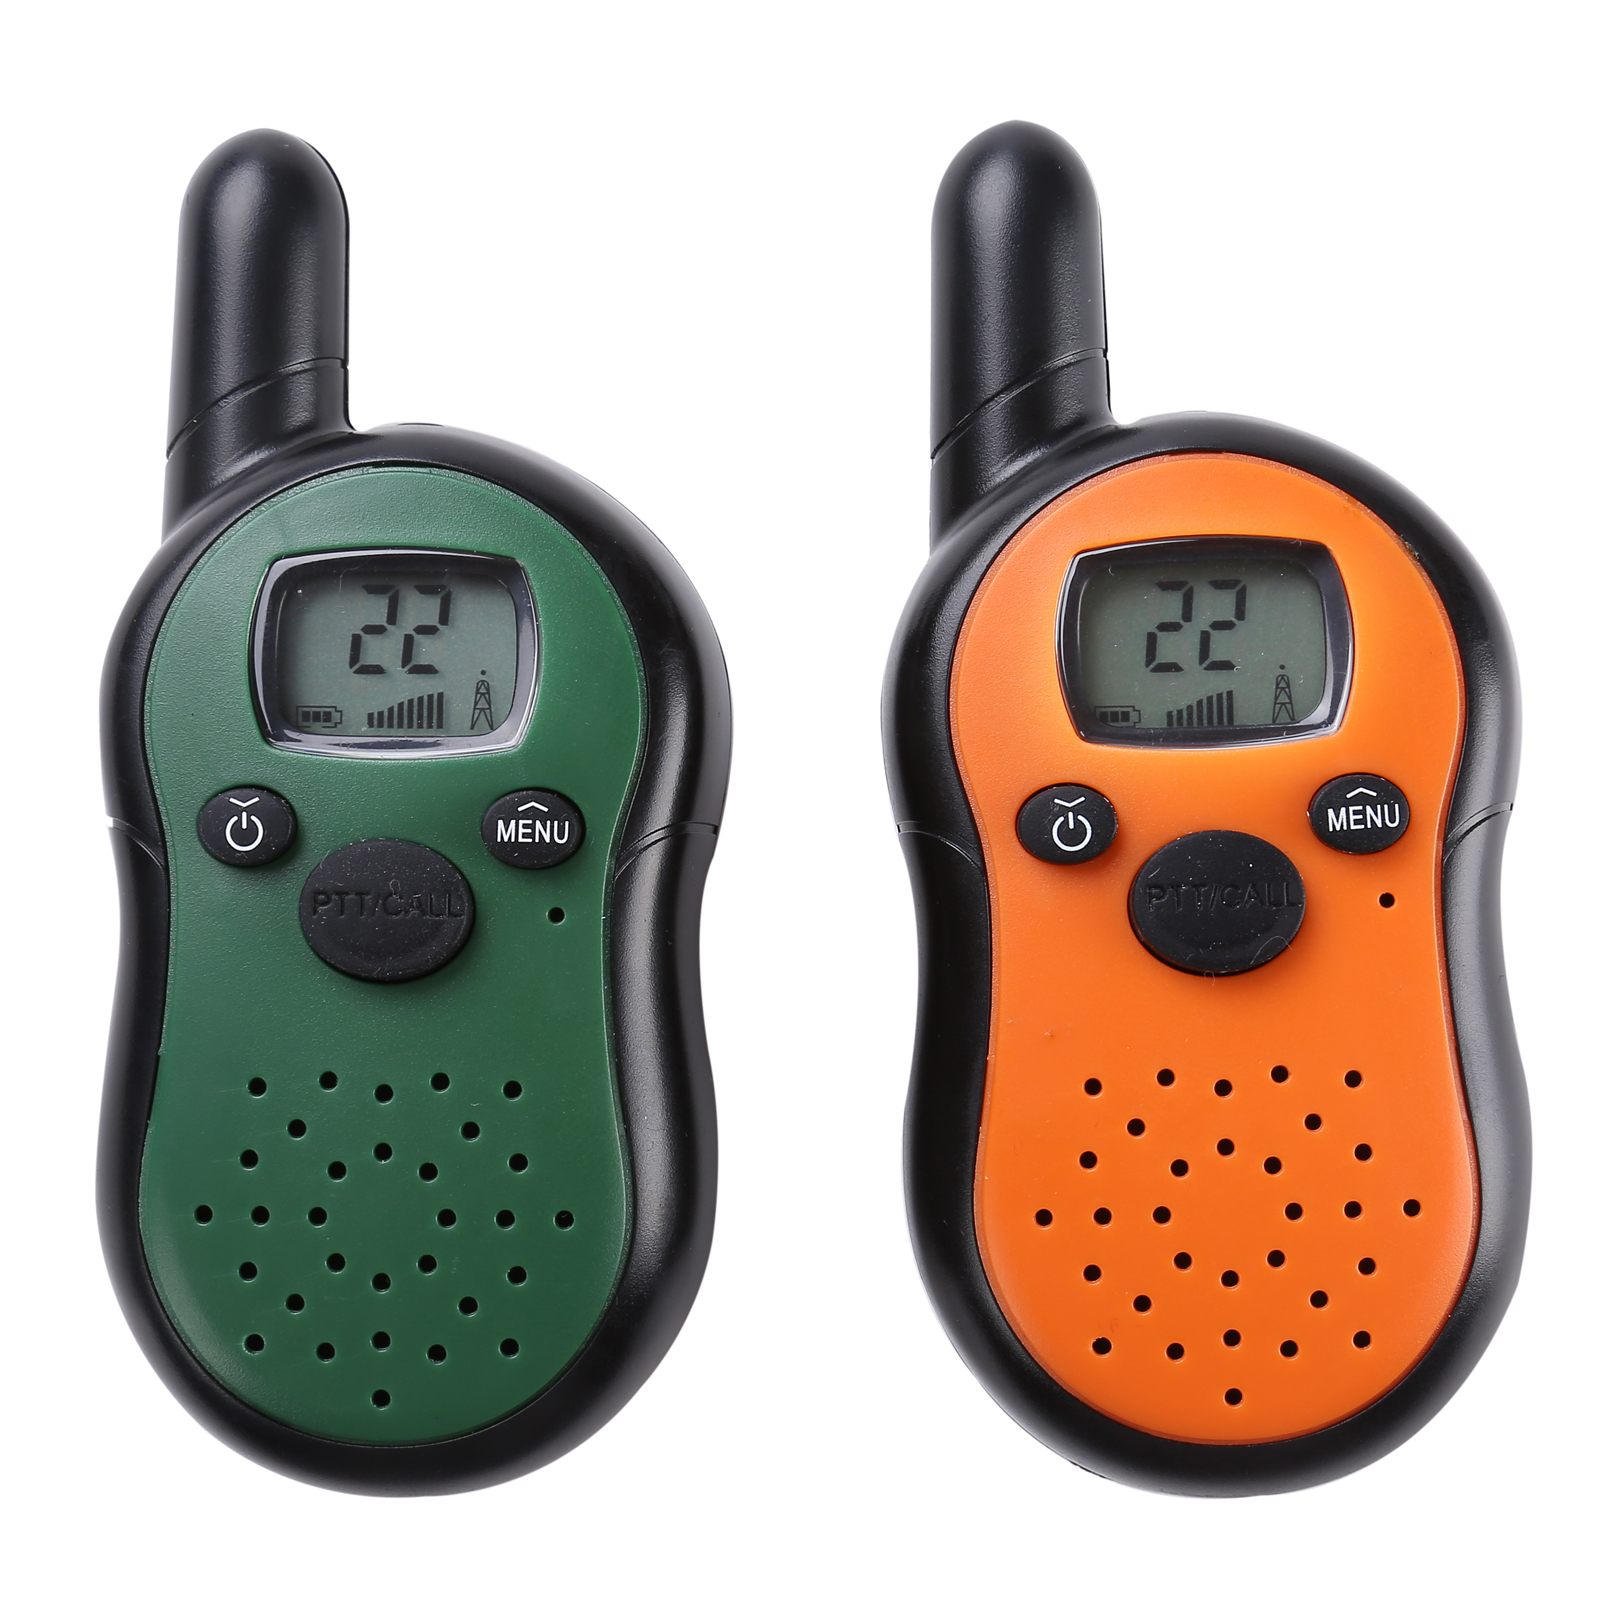 walkie talkie for kids images galleries with a bite. Black Bedroom Furniture Sets. Home Design Ideas